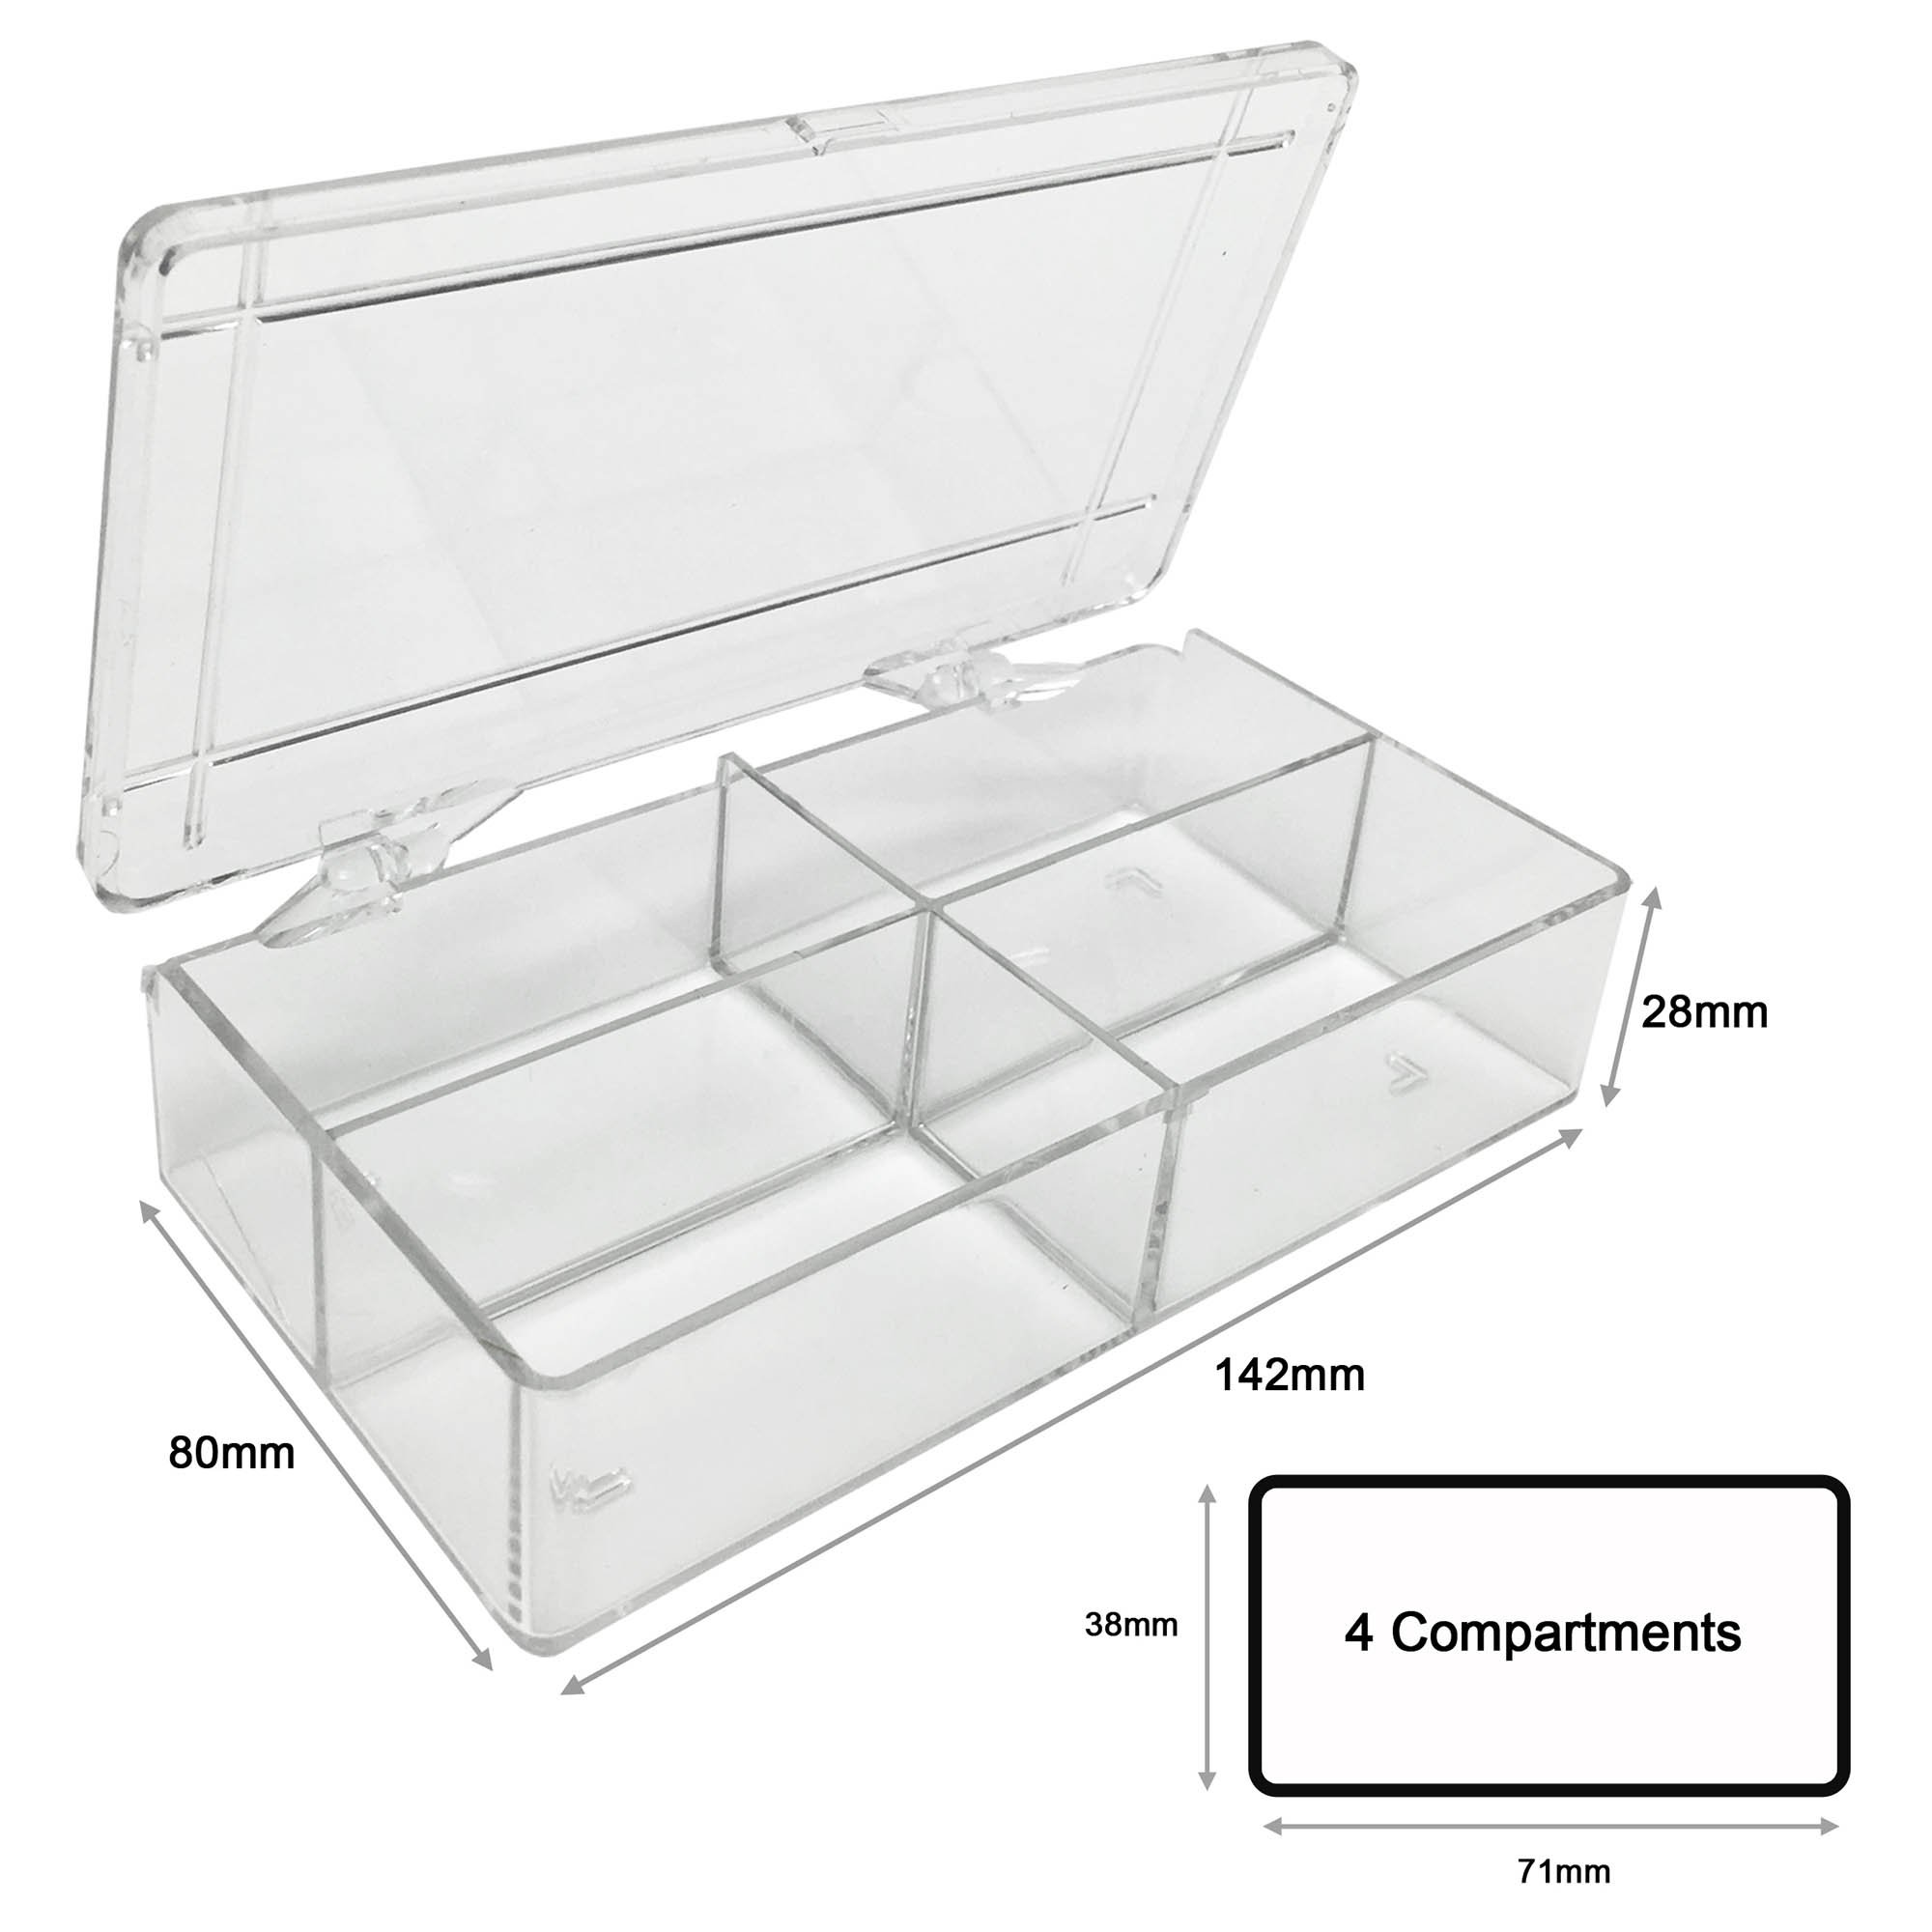 MultiBox Clear Western Blot Box - 4 Compartments 38 x 71 x 28mm Each (Pack of 6)